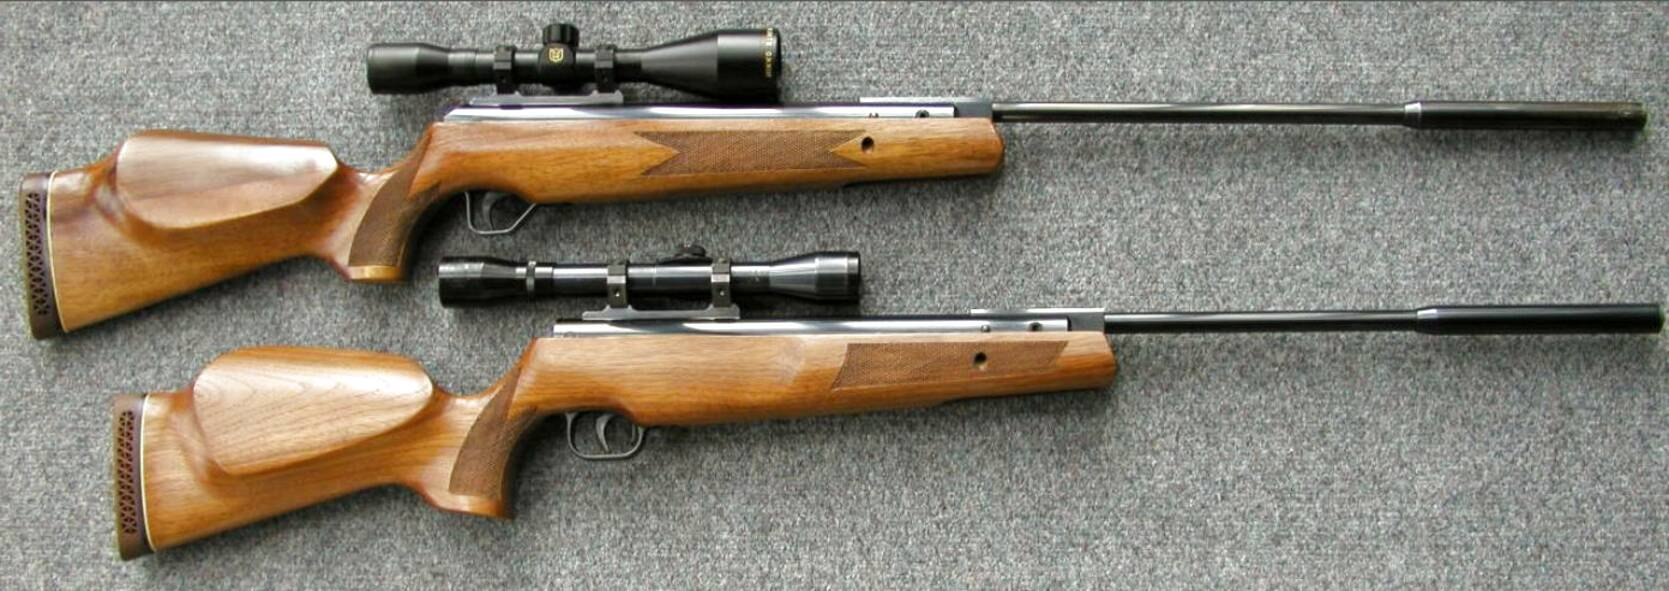 theoben rifle for sale